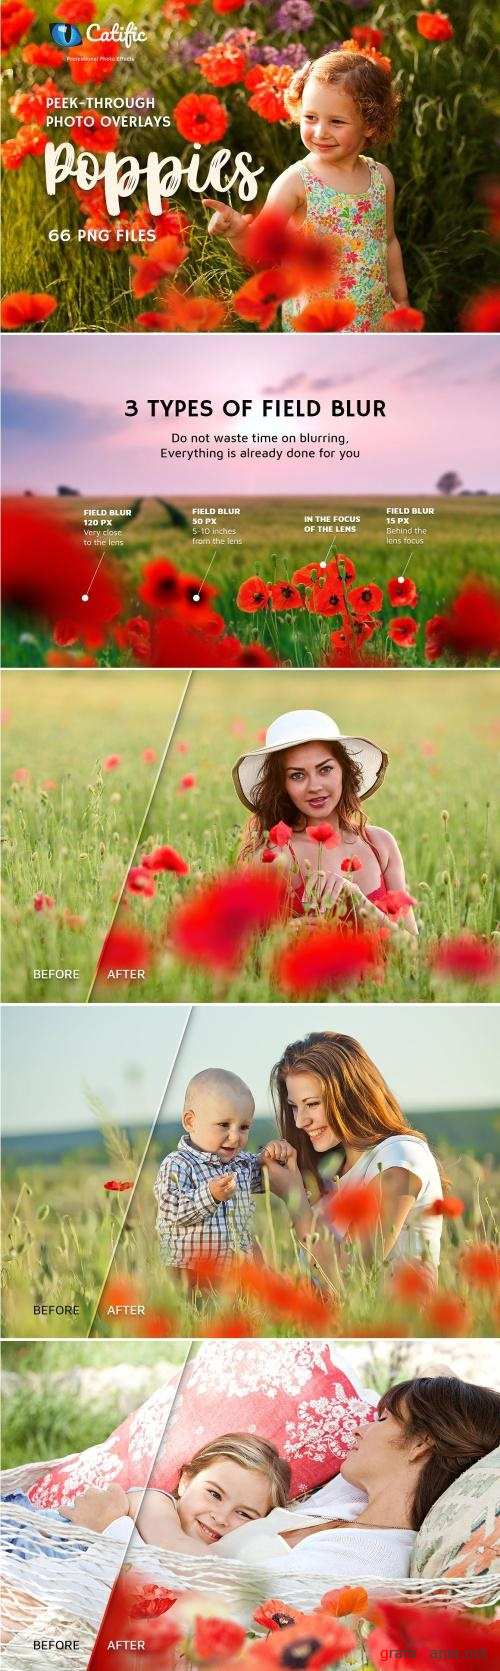 17 Poppie Flowers Photo Overlays - 3019394